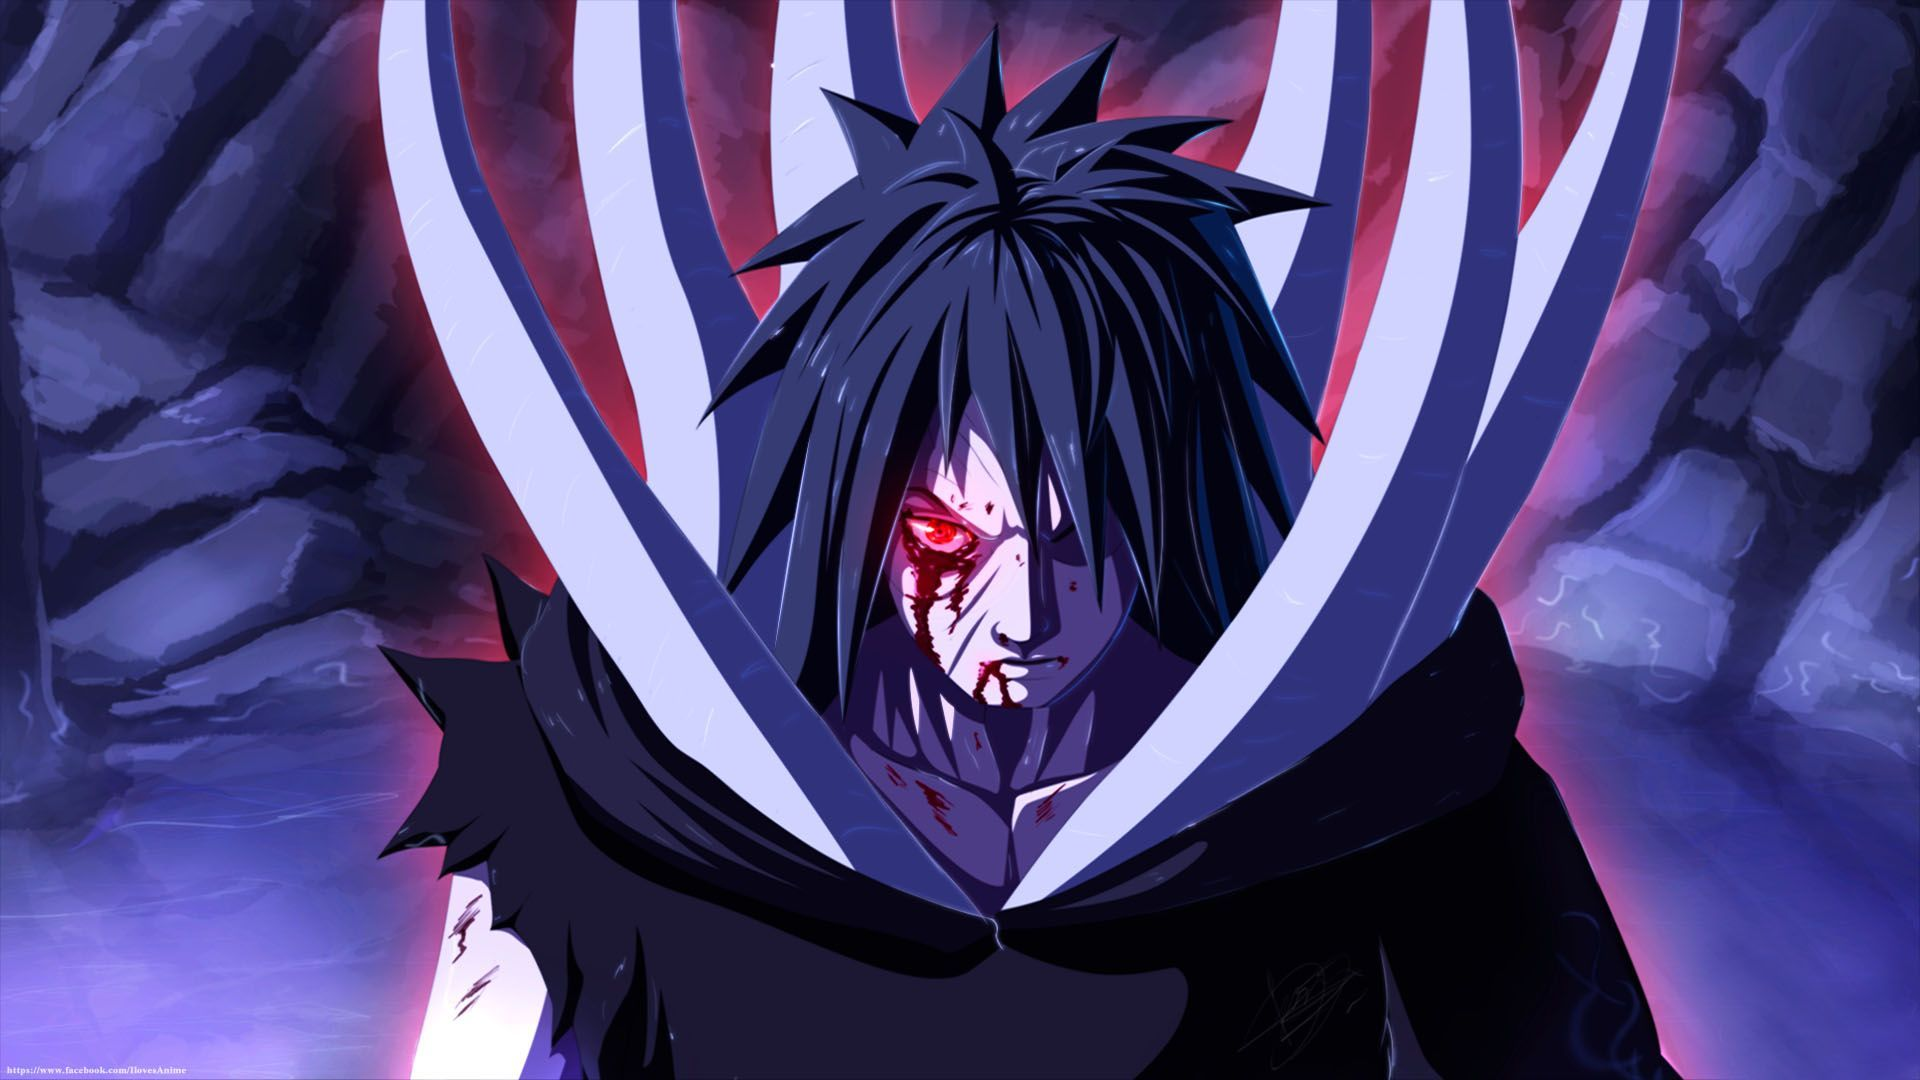 Obito Uchiha Wallpapers Wallpaper Cave Wallpaper Naruto Shippuden Uchiha Naruto Wallpaper